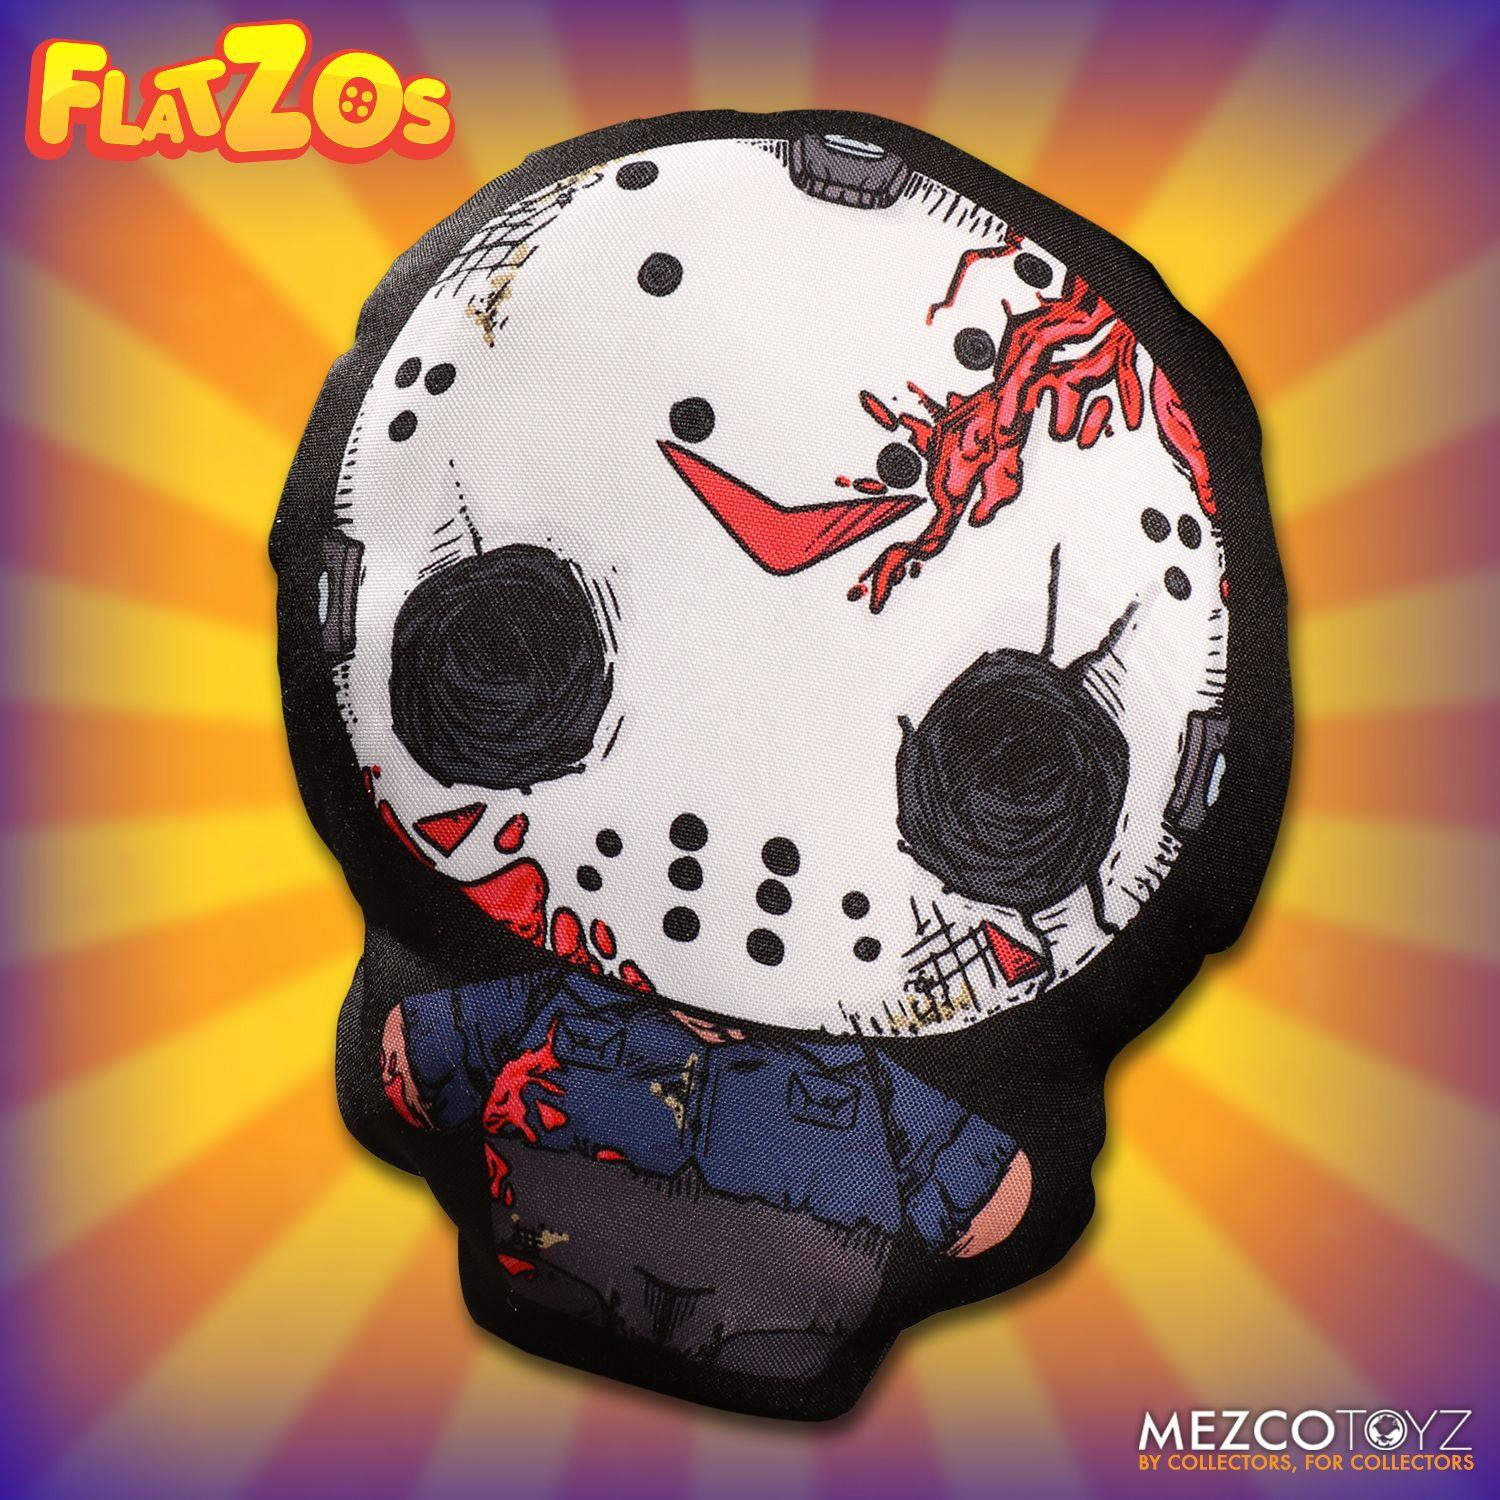 Friday the 13th Flatzos Plush Jason Voorhees 30 cm